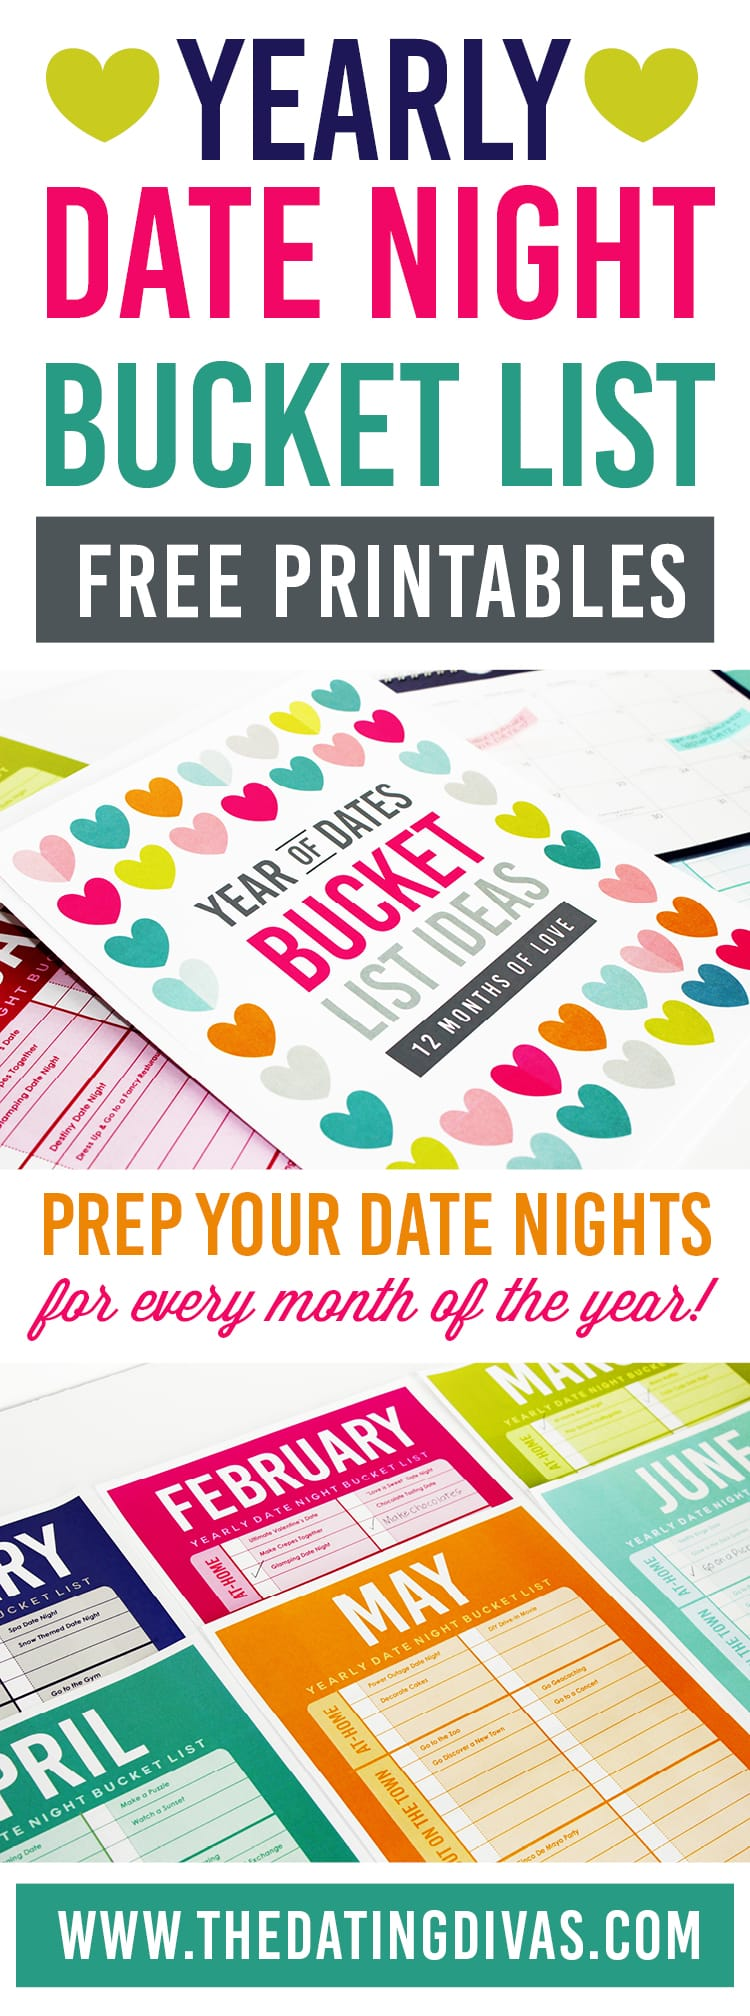 Yearly Date Night Bucket List